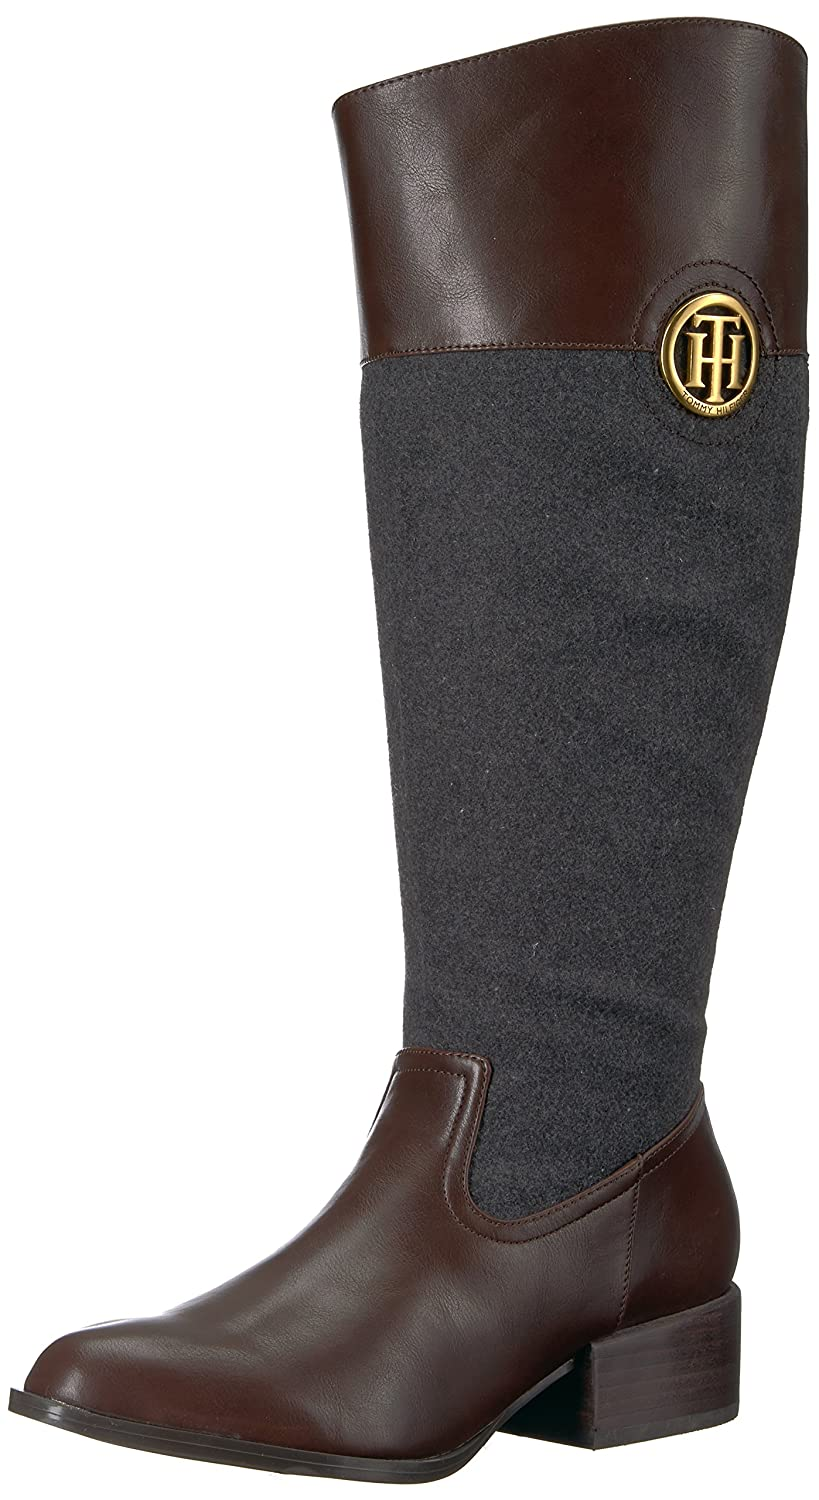 Tommy Hilfiger Women's Madeln-Wc Equestrian Boot B075RM38GQ 5 B(M) US|Brown/Charcoal